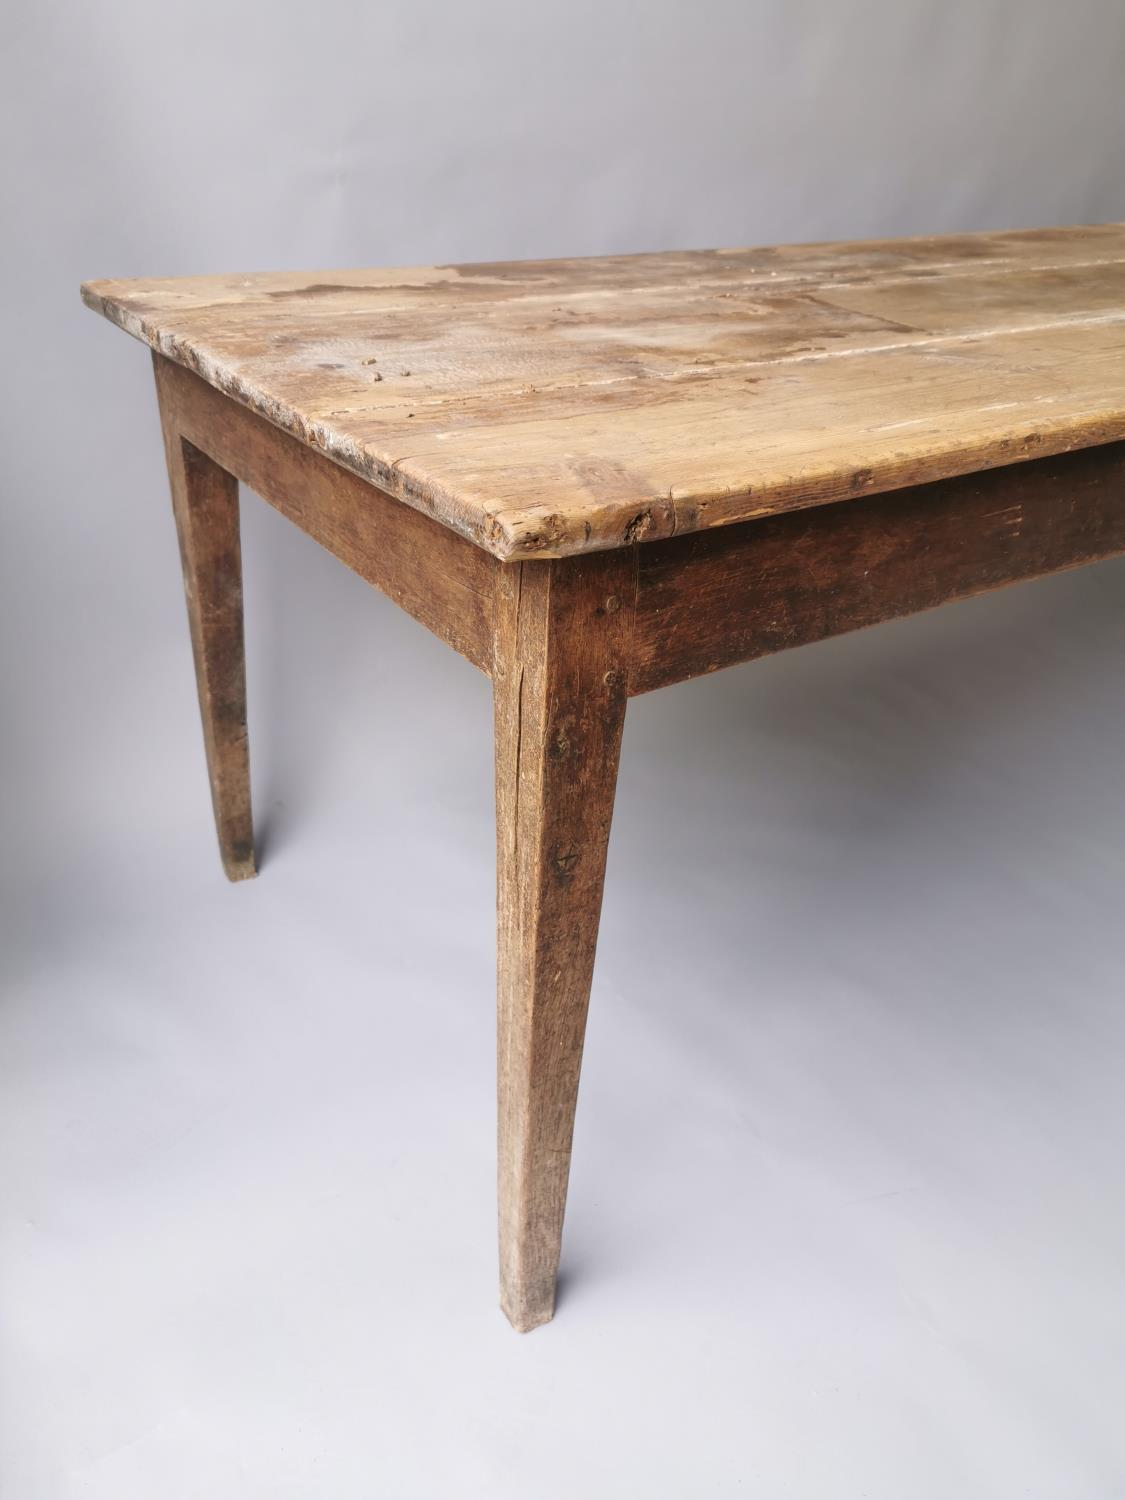 19th C. pine and oak kitchen table on square tapered legs 70 cm H x 198 cm L x 79 cm D - Image 2 of 5